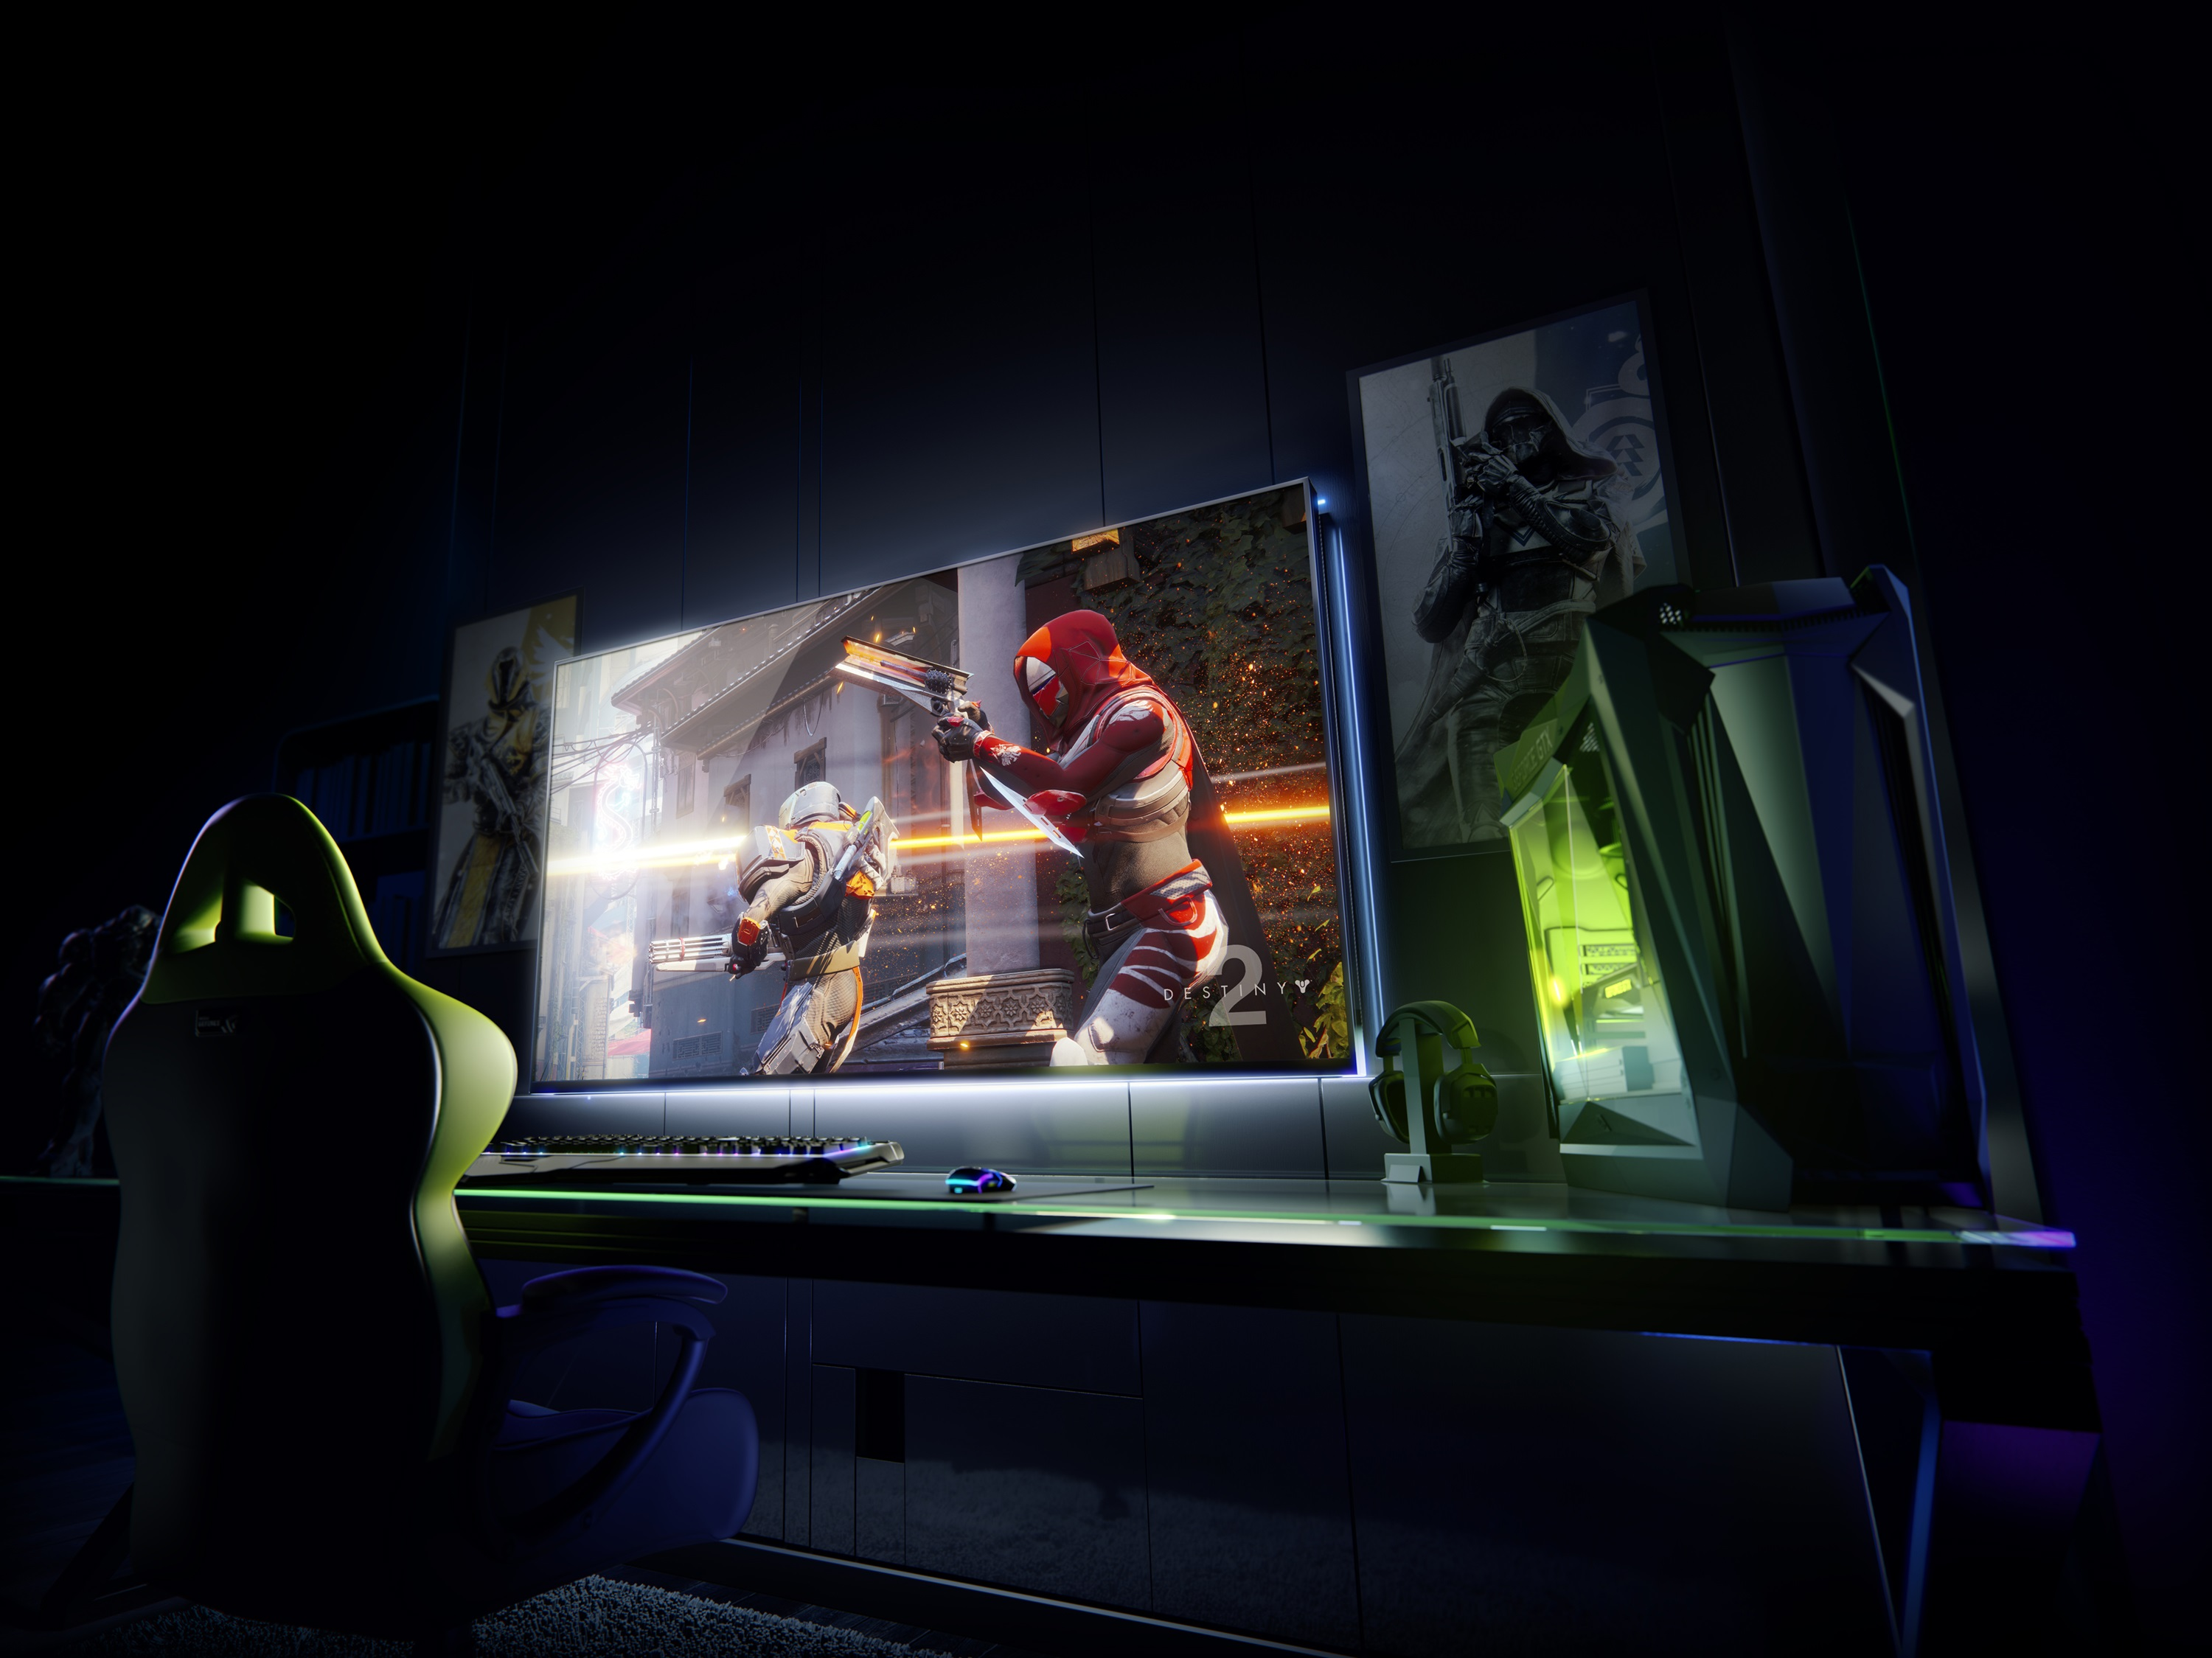 NVIDIA released 65 inch large game display specification built-in Shield host